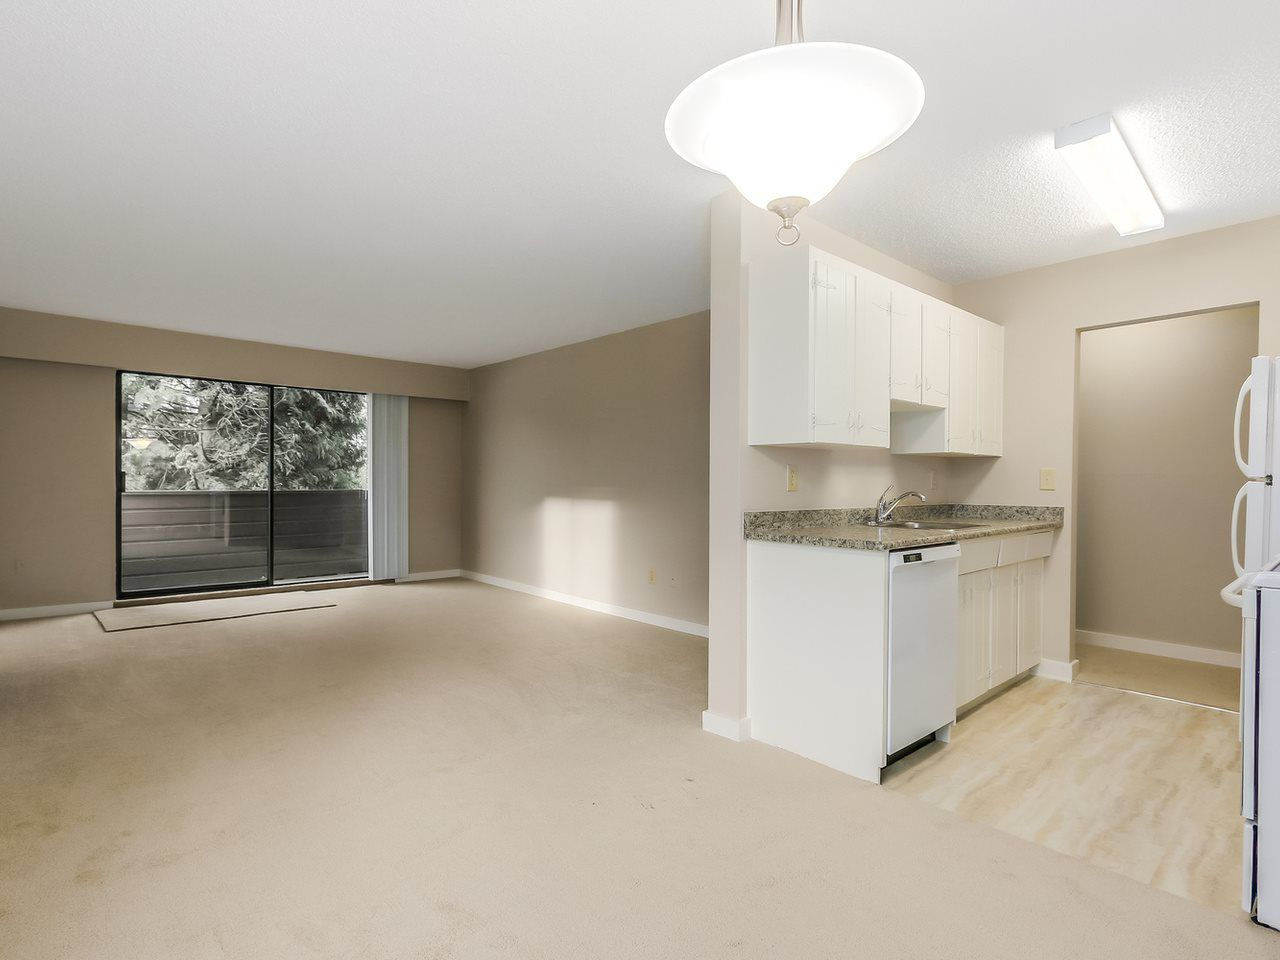 """Main Photo: 201 341 3RD Street in North Vancouver: Central Lonsdale Condo for sale in """"The Lisa"""" : MLS®# R2002990"""